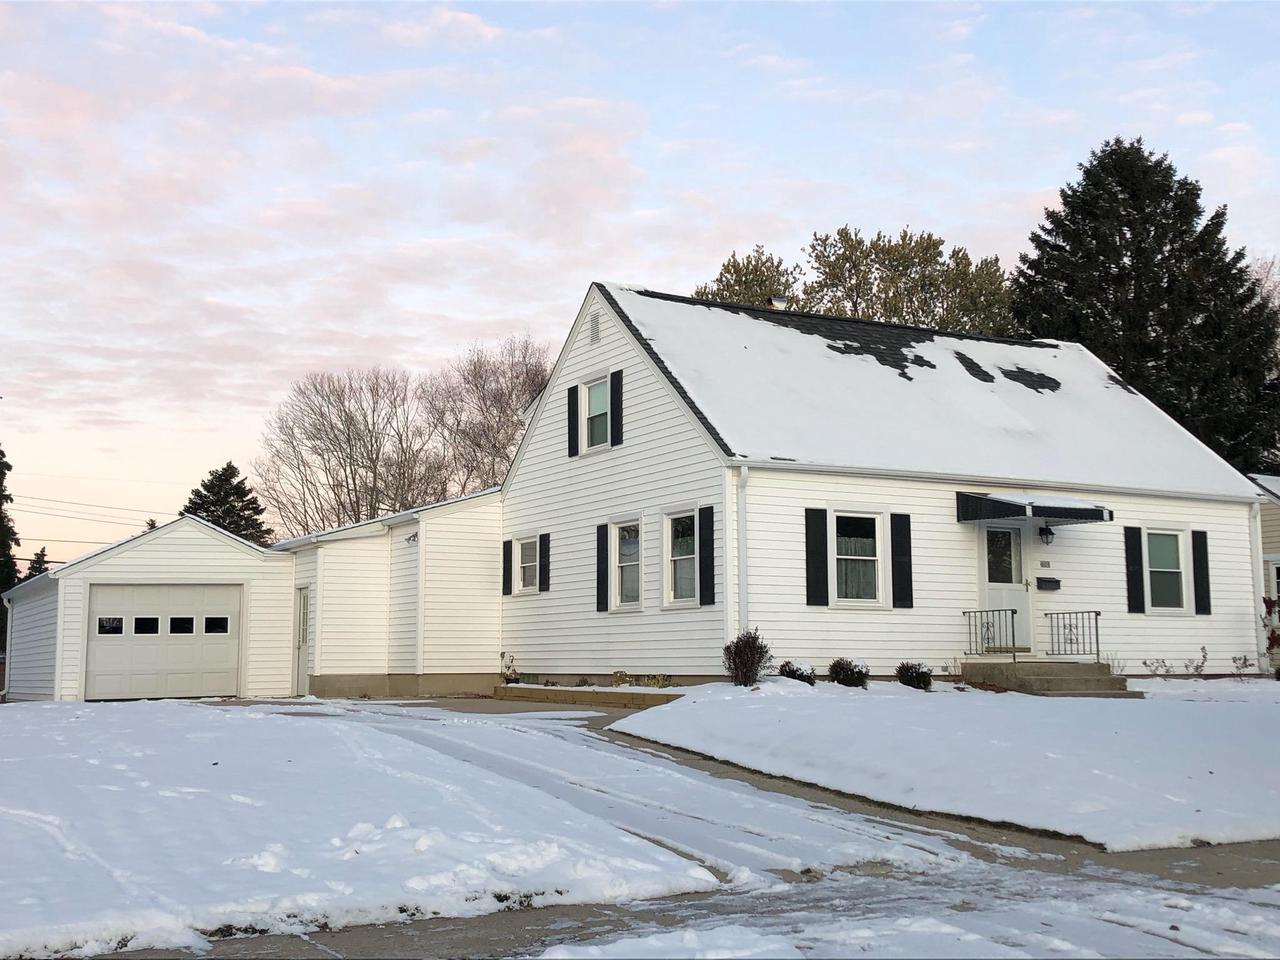 Pride of Ownership shines throughout this spacious & well maintained over 1,800 sq ft 4br/1.5ba plus a cozy 3 season room Cape Cod situated on a beautiful city lot in a ideal location. Close to schools, parks, downtown, shopping, restaurants.  Main floor boasts, Great/Living Room, Family Room w/large picture window, light and bright eat-in Kitchen w/lots of cabinetry, Bedroom, Den/Study Computer Room plus a full bath. Upper floor fatures 3br/1/2bath. New Roof/2008, Furnace & A/C/2013,Newer Windows, HWF's in some rooms,walkout door in basement & much more!